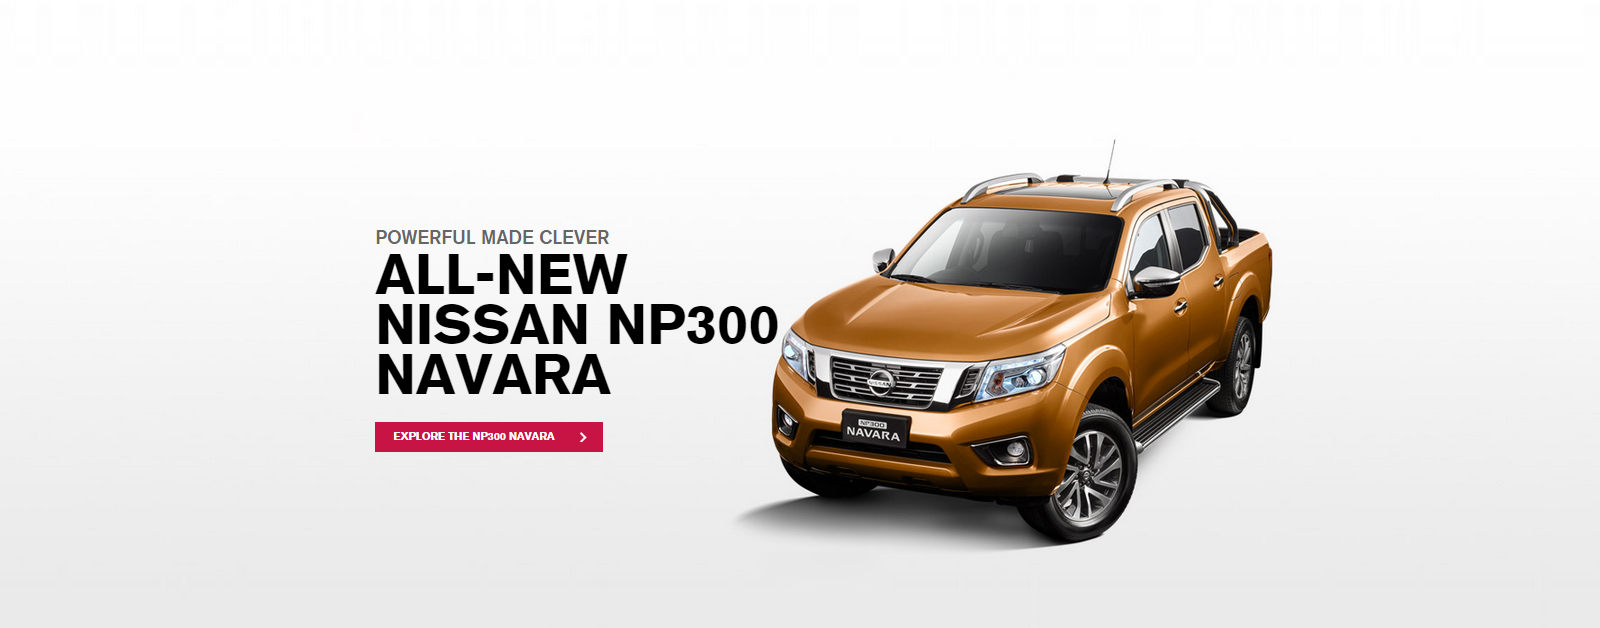 All-new Nissan NP300 Navara, powerful made clever, test drive at Metro Nissan Brisbane.